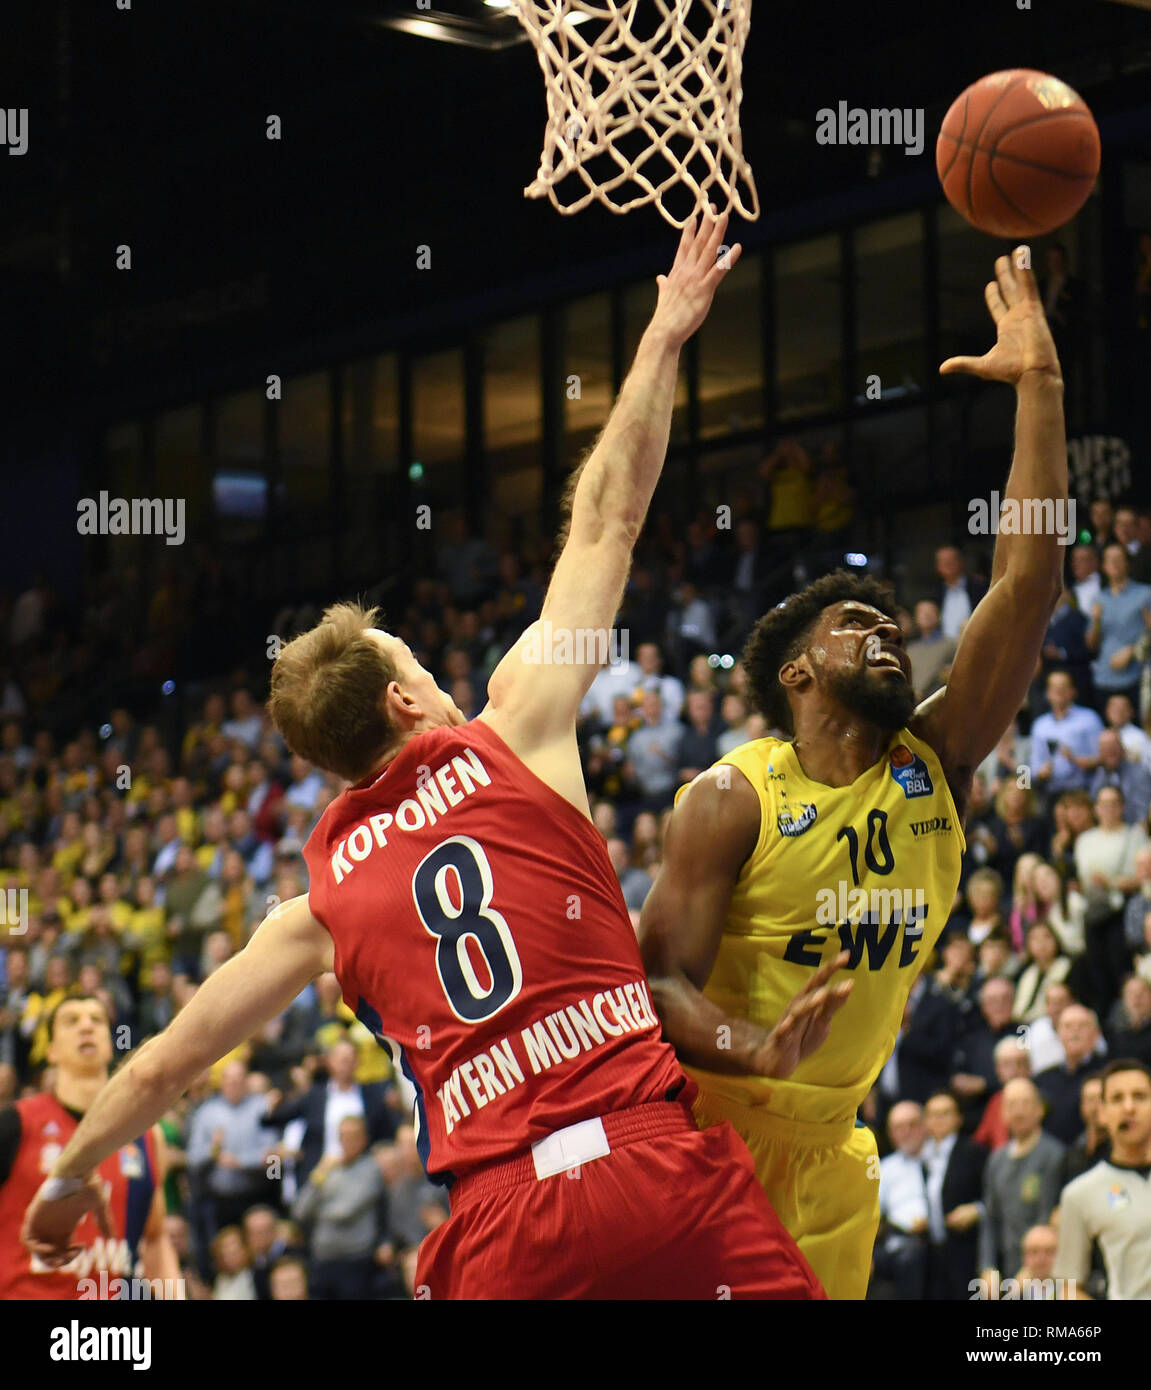 14 February 2019, Lower Saxony, Oldenburg: Basketball: Bundesliga, EWE Baskets Oldenburg - FC Bayern Munich, main round, 21st matchday. Oldenburg's Frantz Massenat (r) throws a basket at Munich's Petteri Koponen. Photo: Carmen Jaspersen/dpa - Stock Image